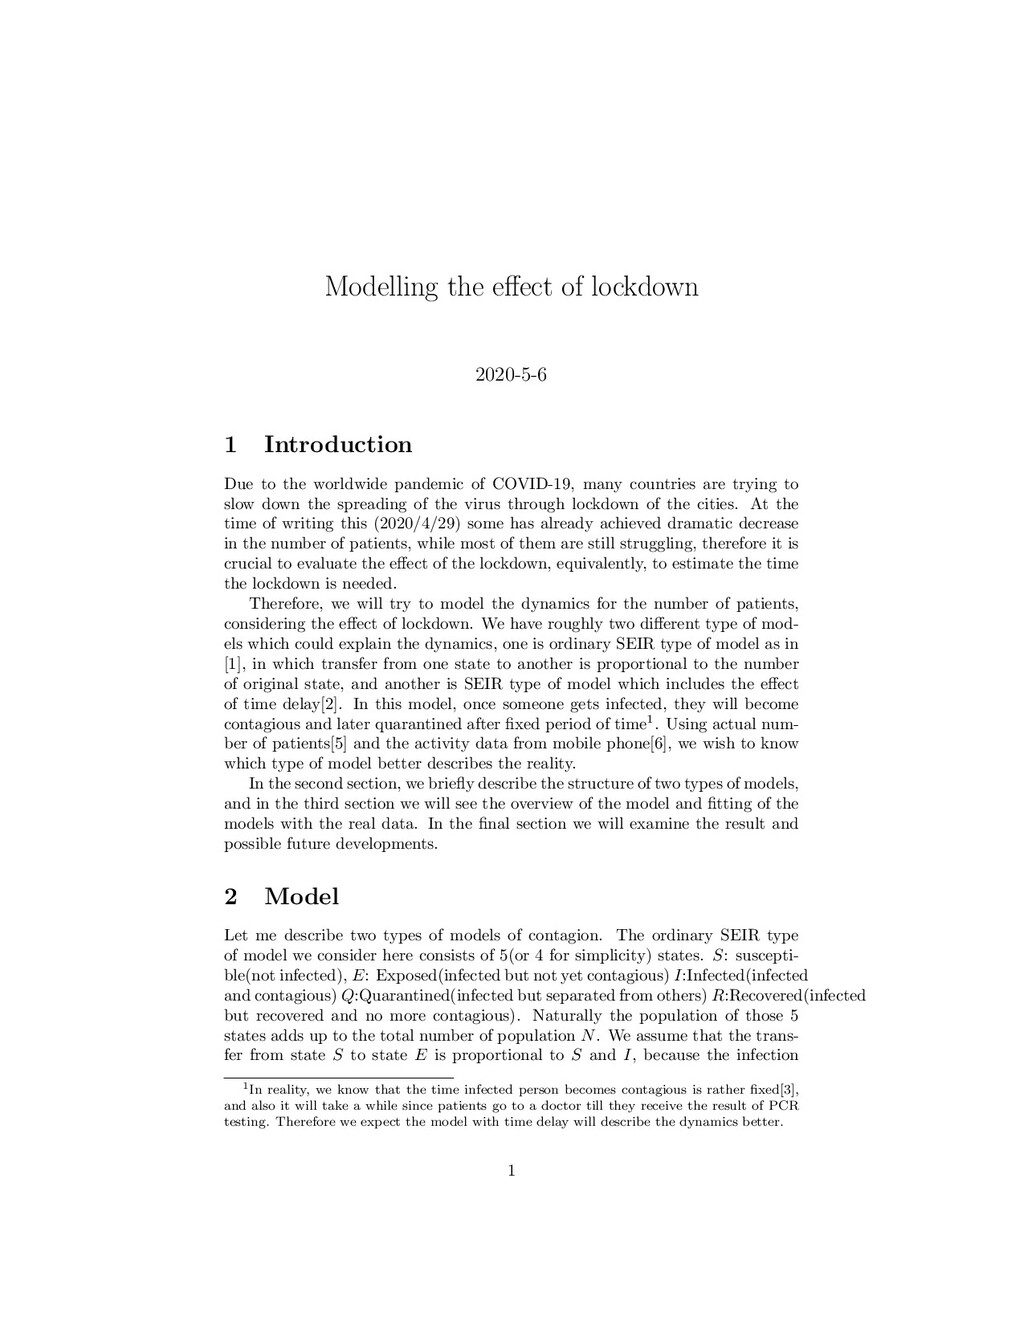 Modelling the effect of lockdown 2020-5-6 1 Intr...